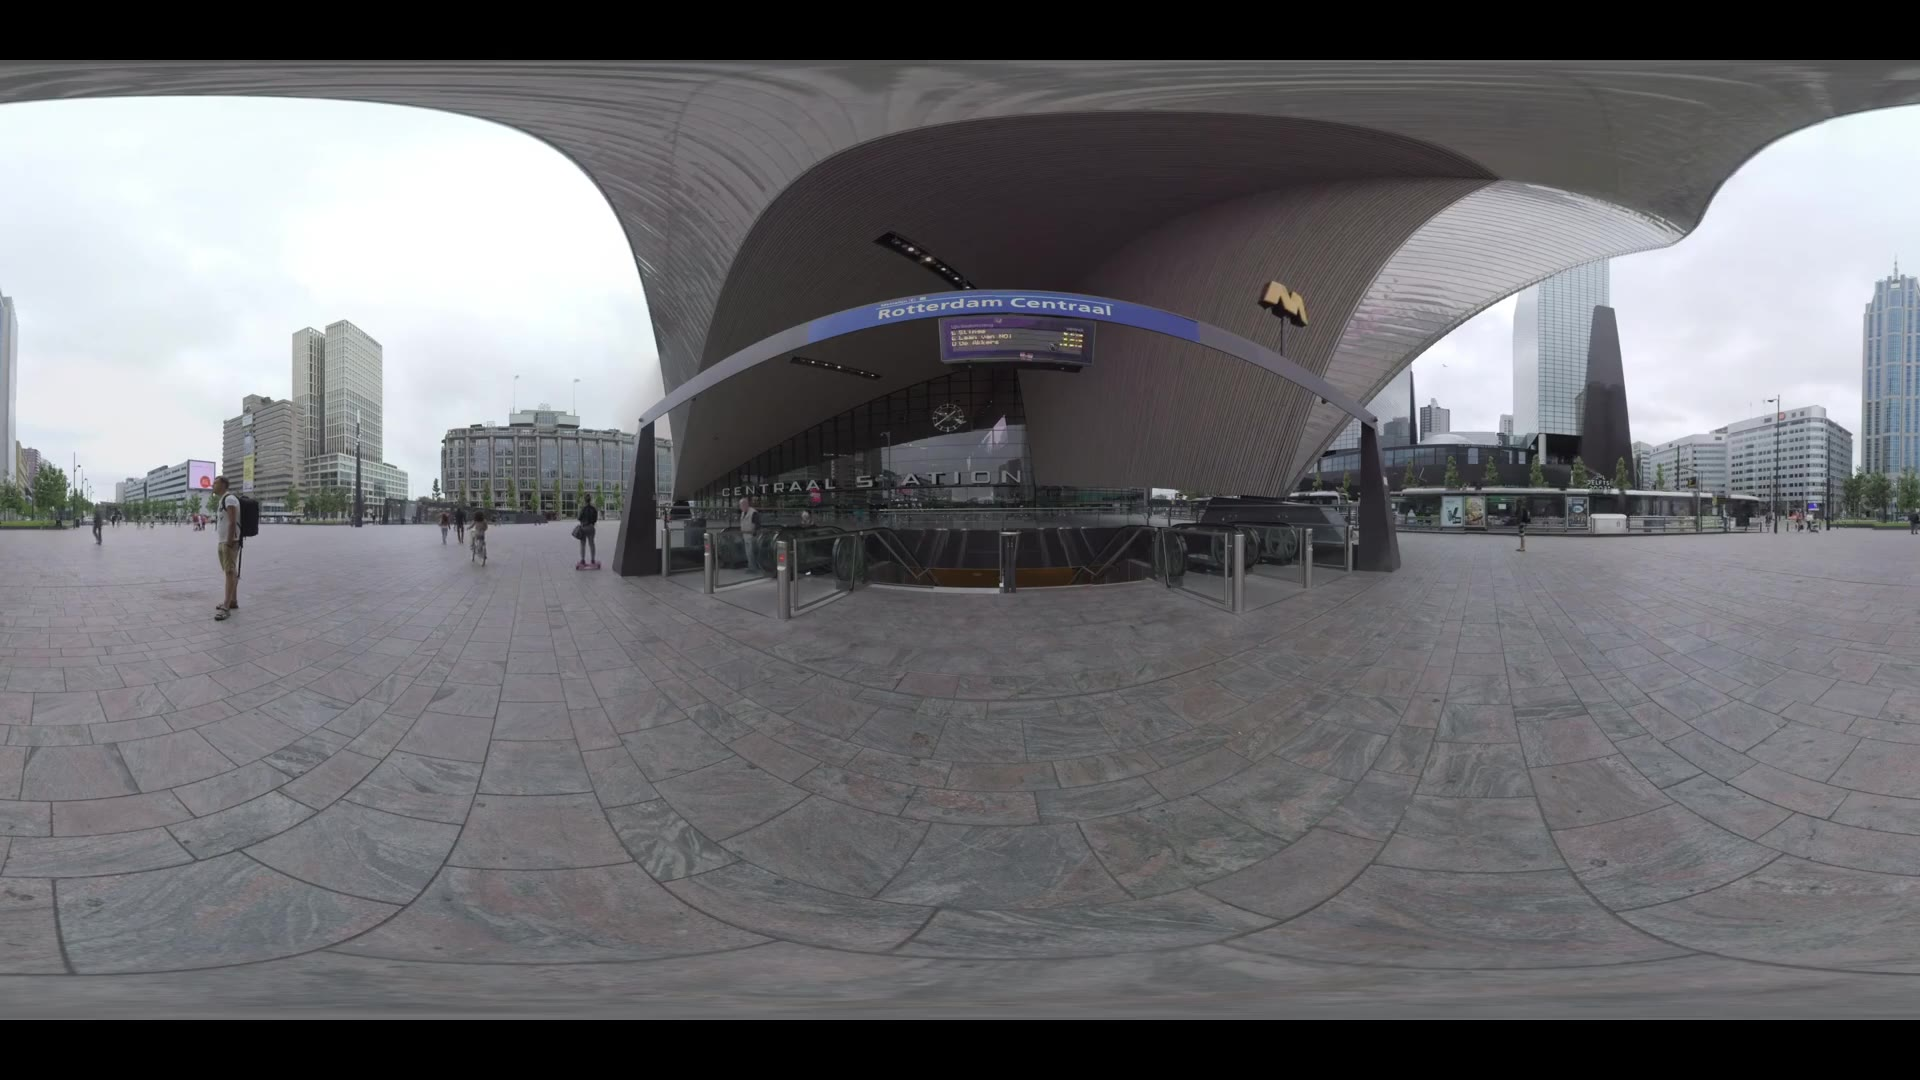 ROTTERDAM, NETHERLANDS - AUGUST 07, 2016: 360 VR video. Cityscape with Rotterdam Centraal entrance and people walking on the square in front of it